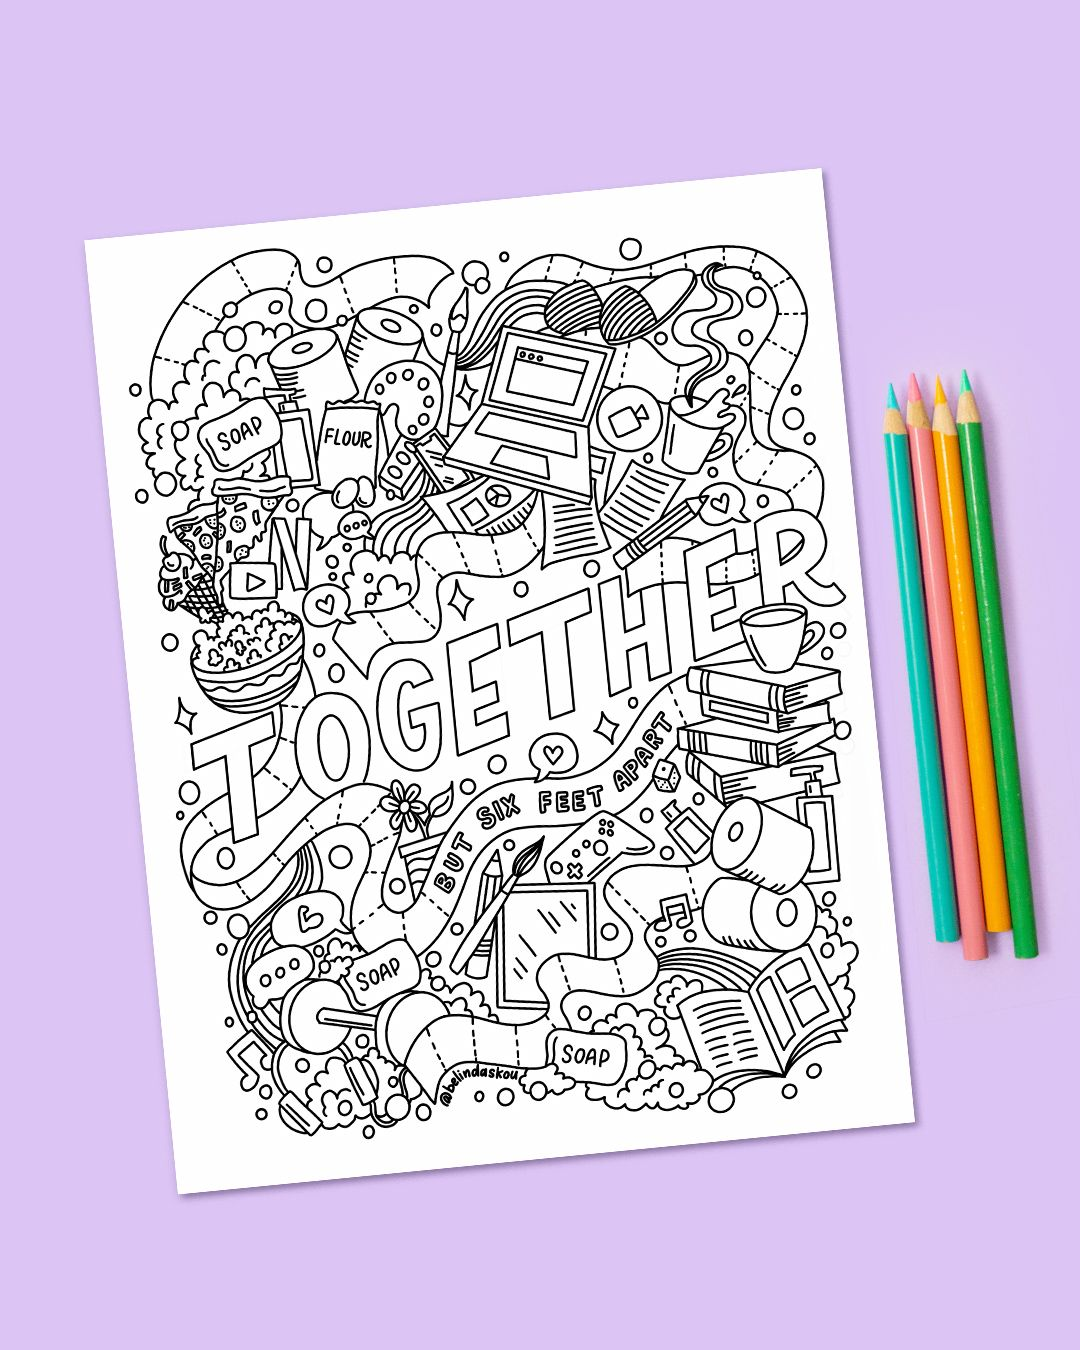 Free Coloring Page For Social Distancing Just For You